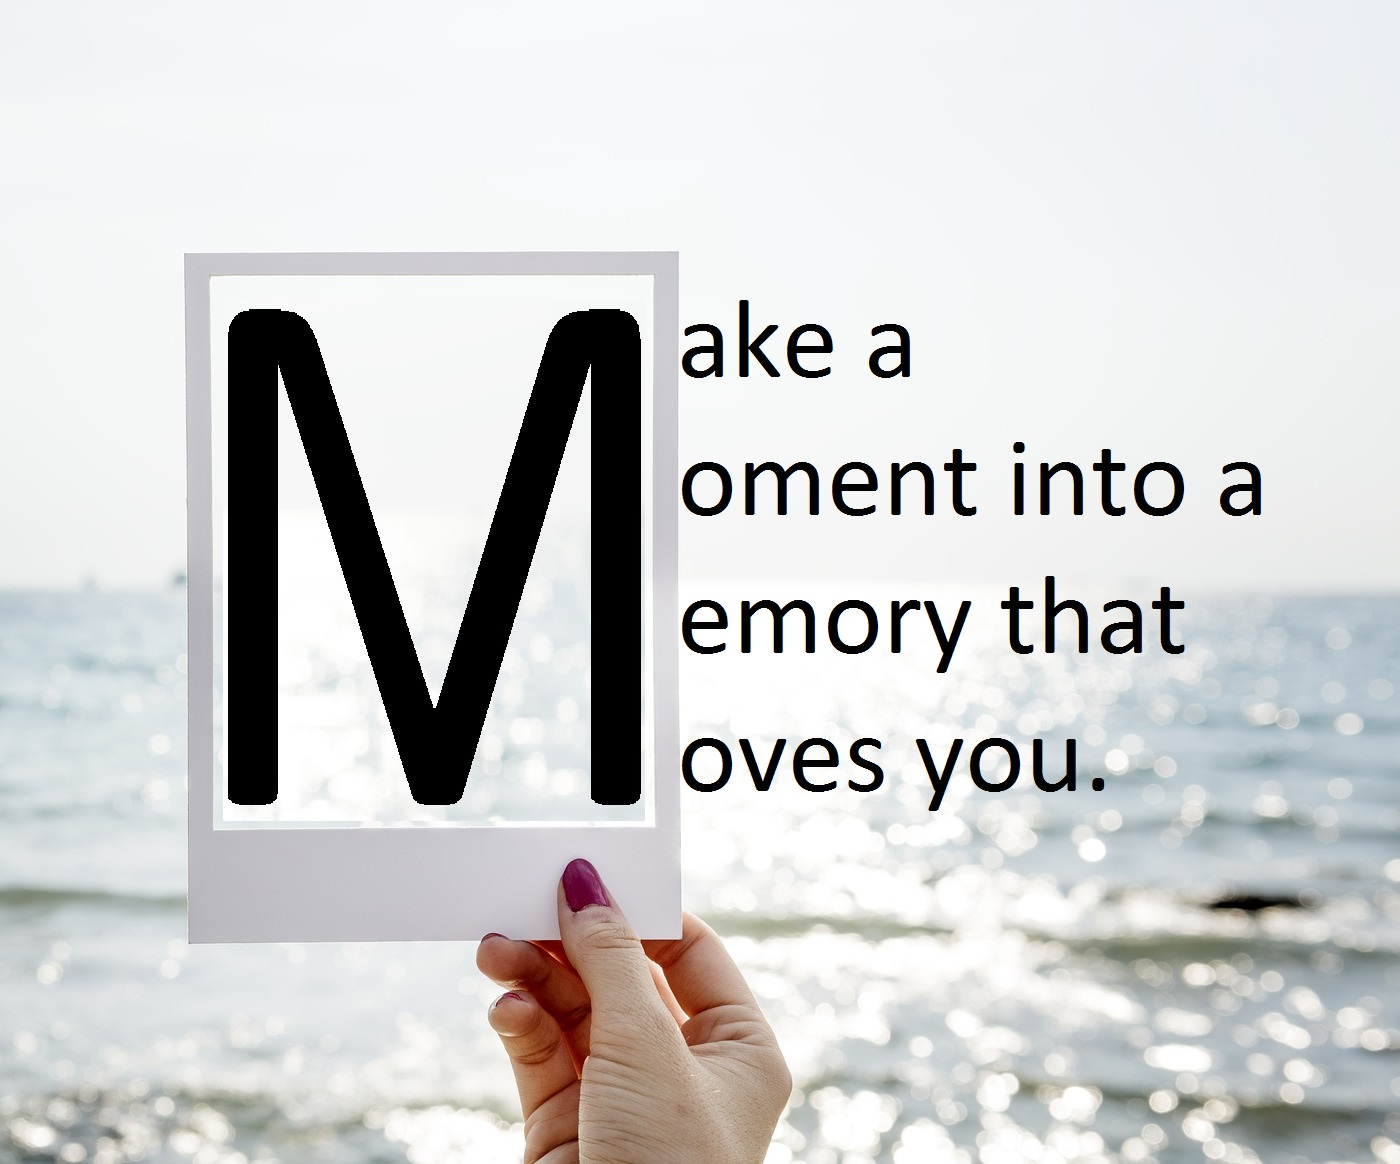 Make a moment into a memory that moves you.